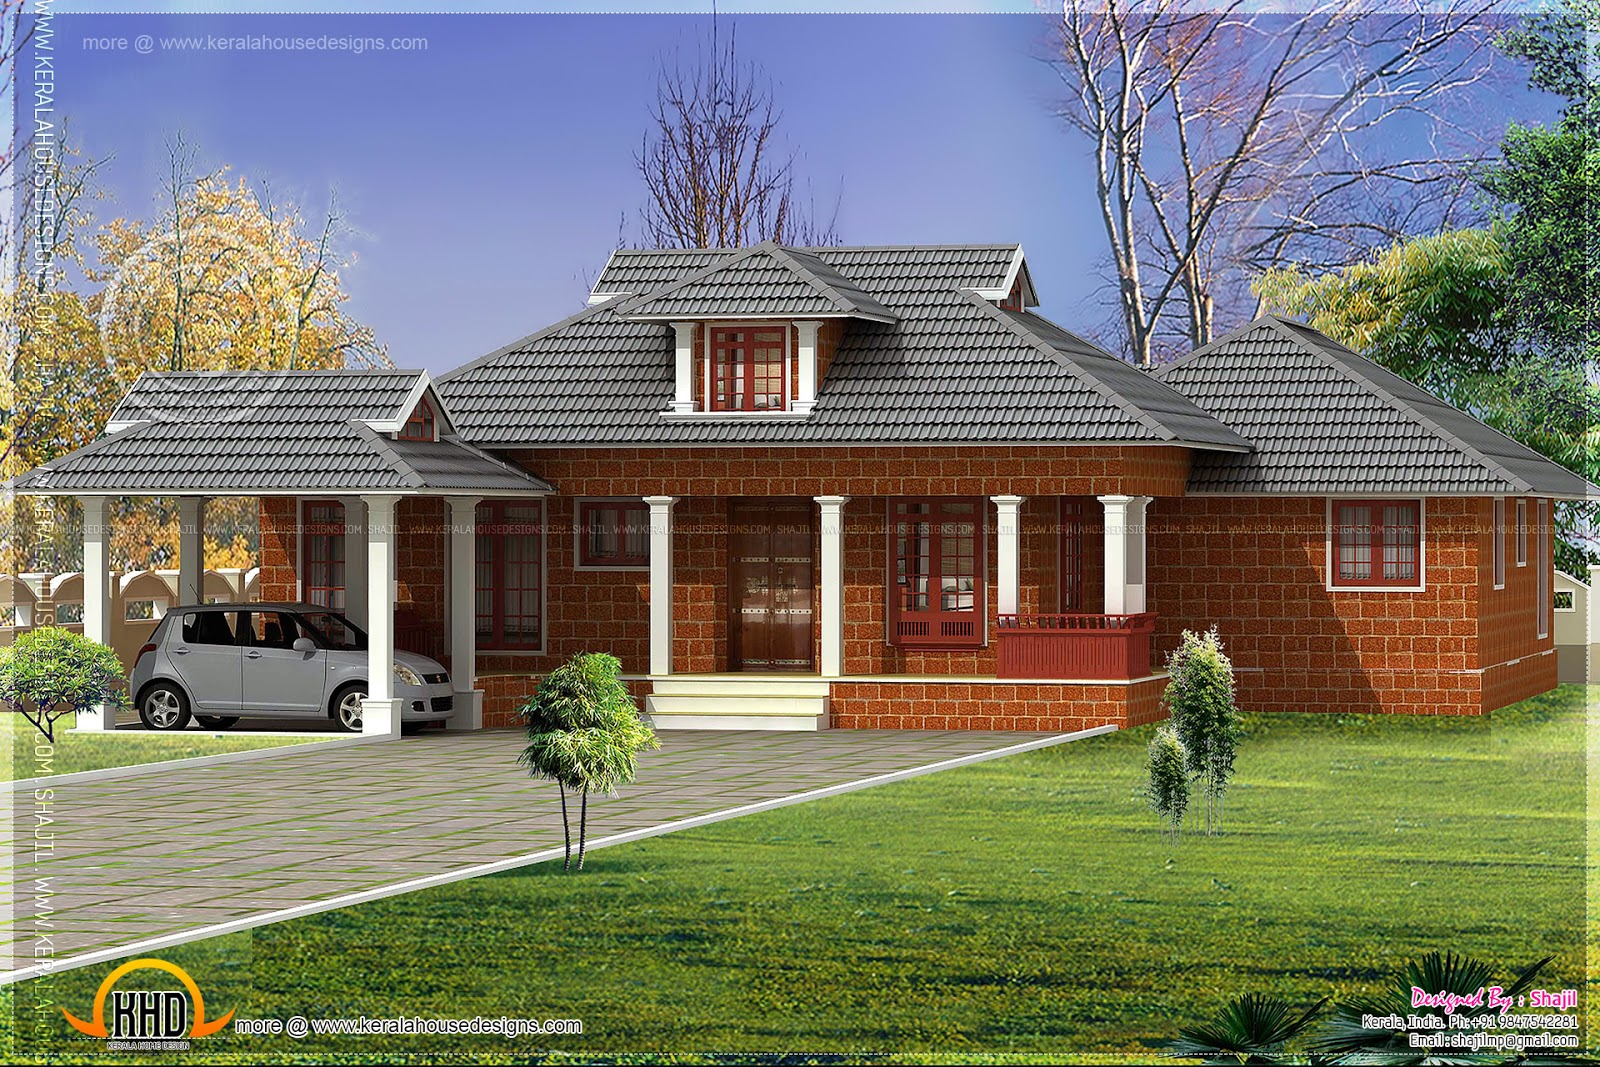 Laterite house design in Nalukettu style - Kerala home ... on kerala home design and floor plans, indian house designs and floor plans, kerala home designs two storey houses, industrial style house plans, kerala style houses 1600 square foot, habitat style house plans, 30x60 house floor plans,